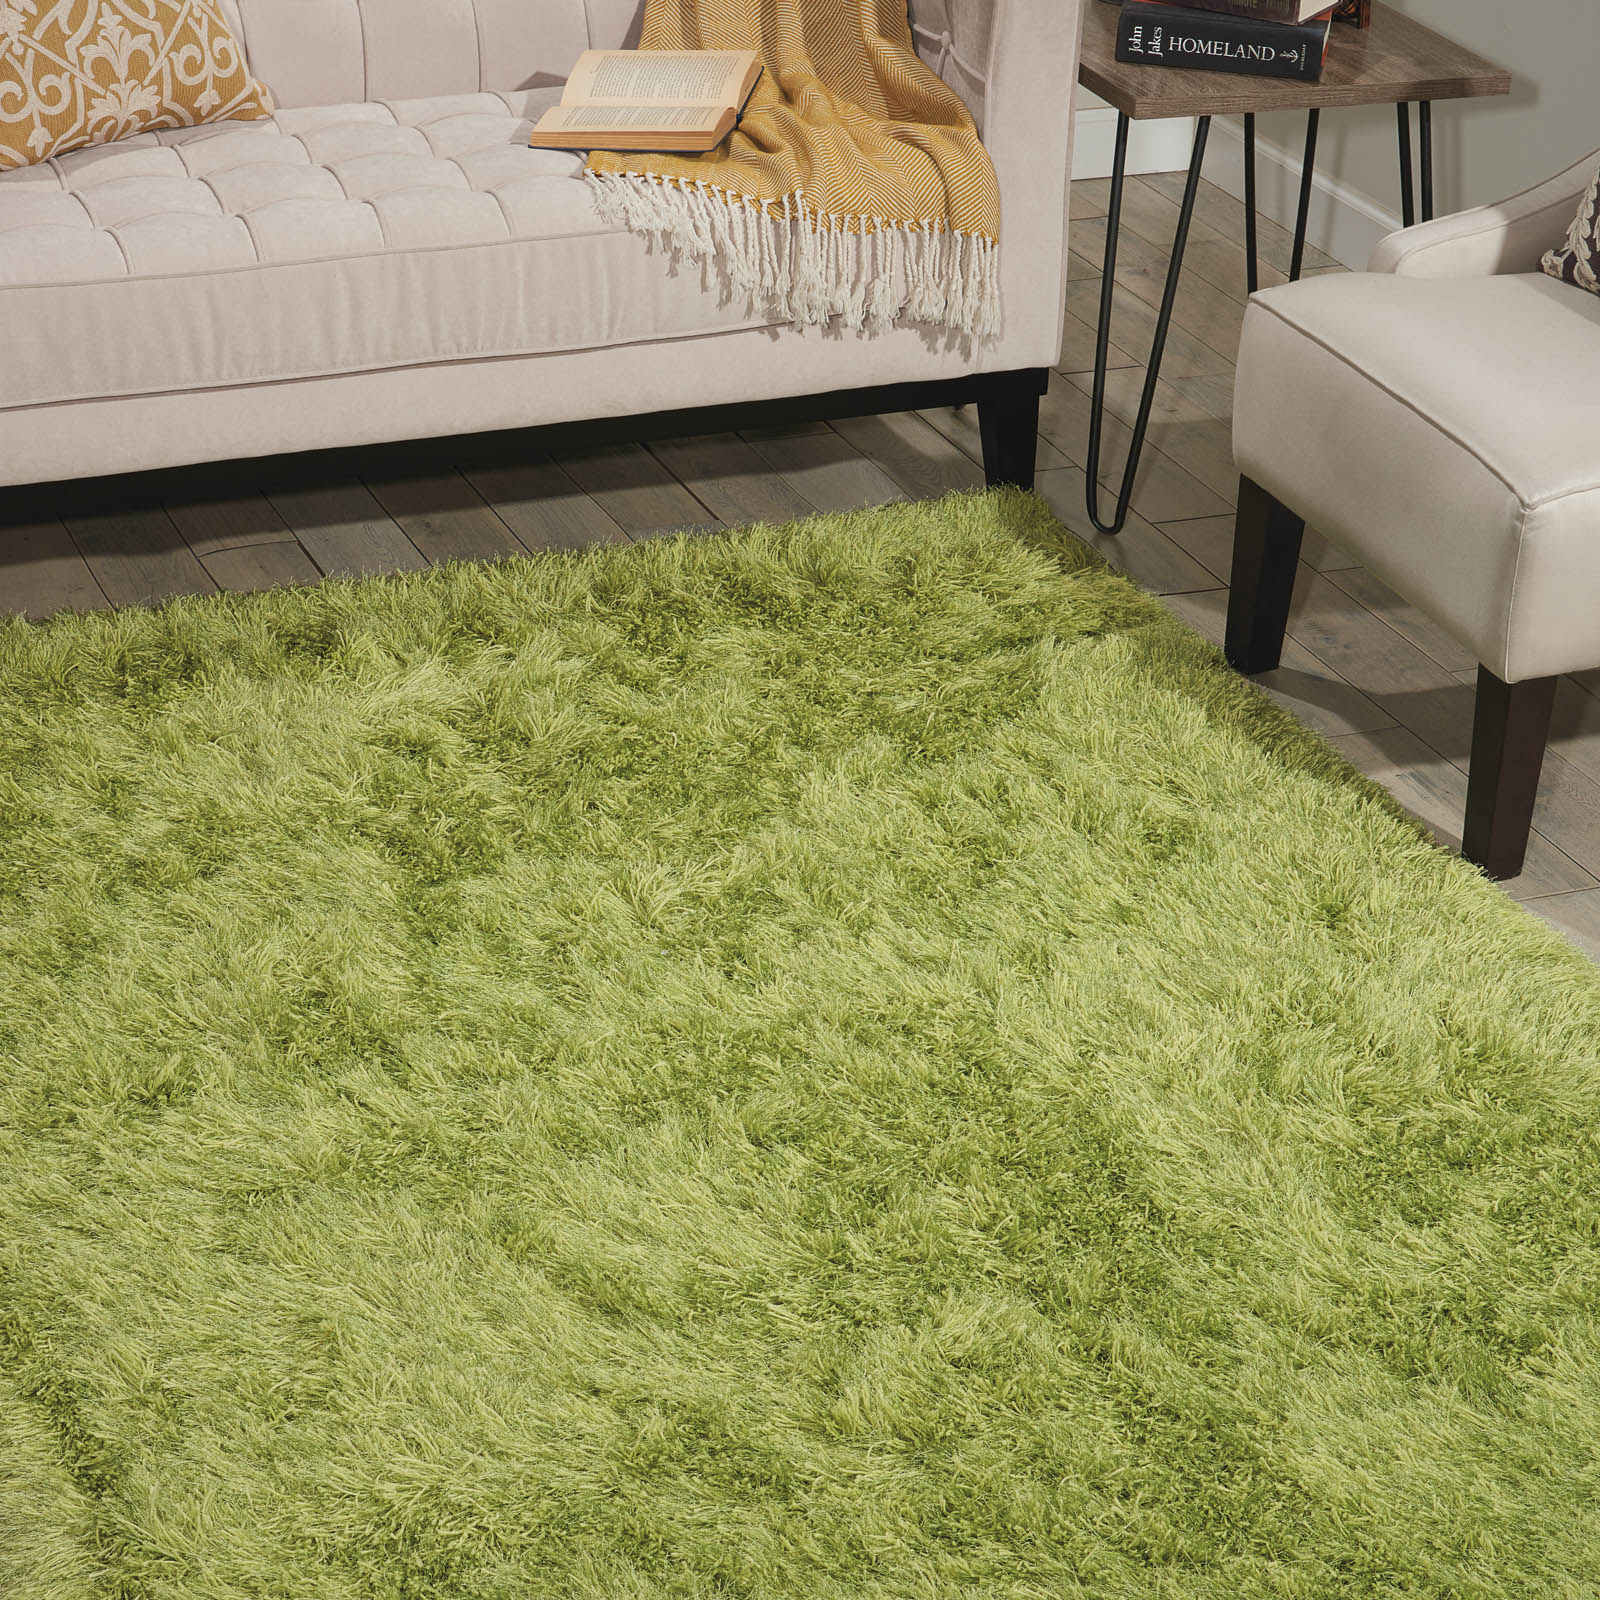 Studio Rugs KI900 in Peridot